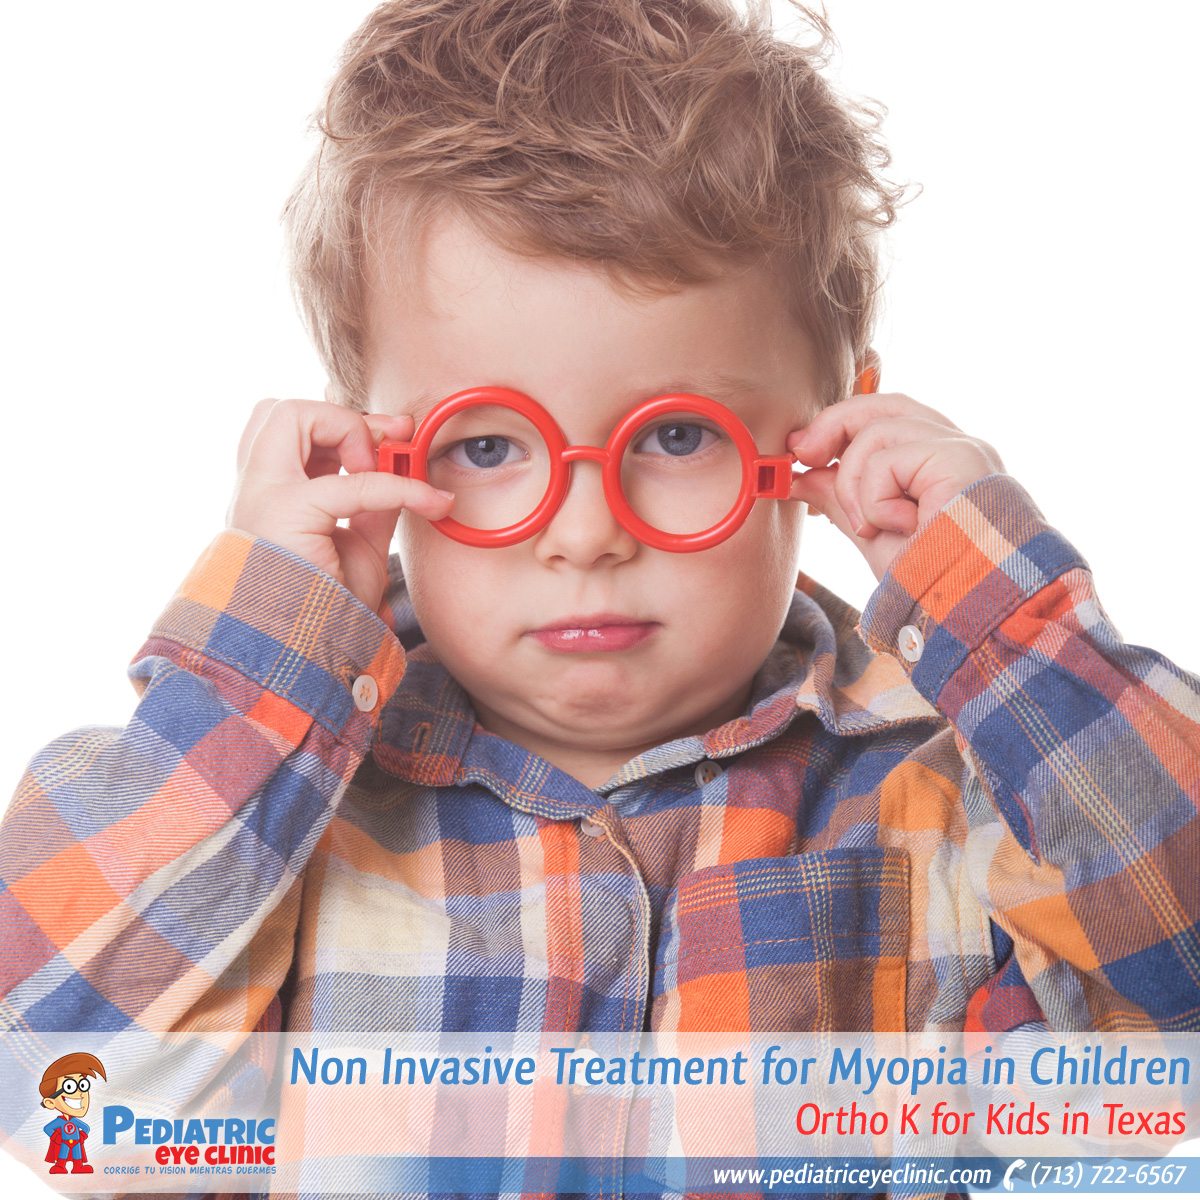 03-non-invasive-treatment-for-myopia-in-children